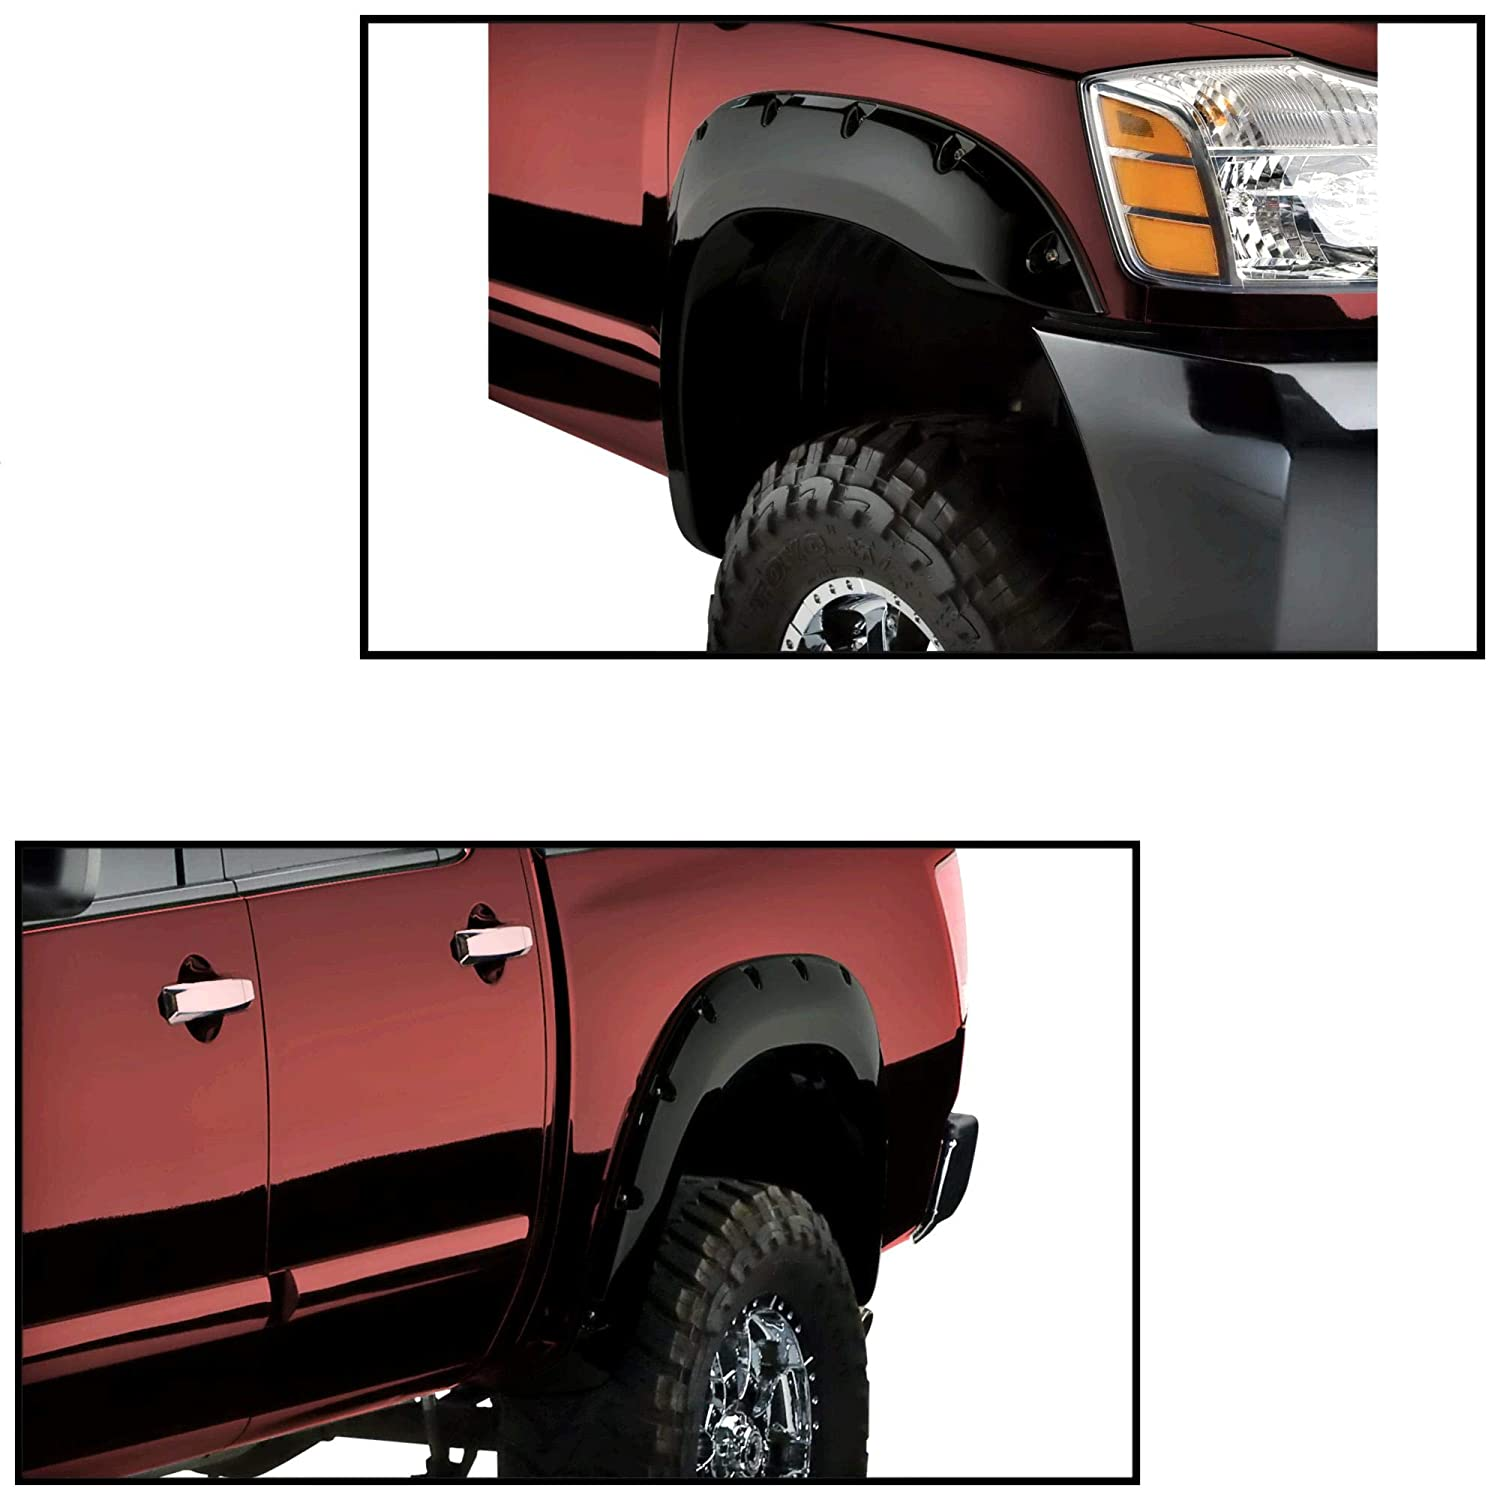 For Nissan Titan 2004-2014 With Bedside Lockbox Black Front and Rear Fender Flares